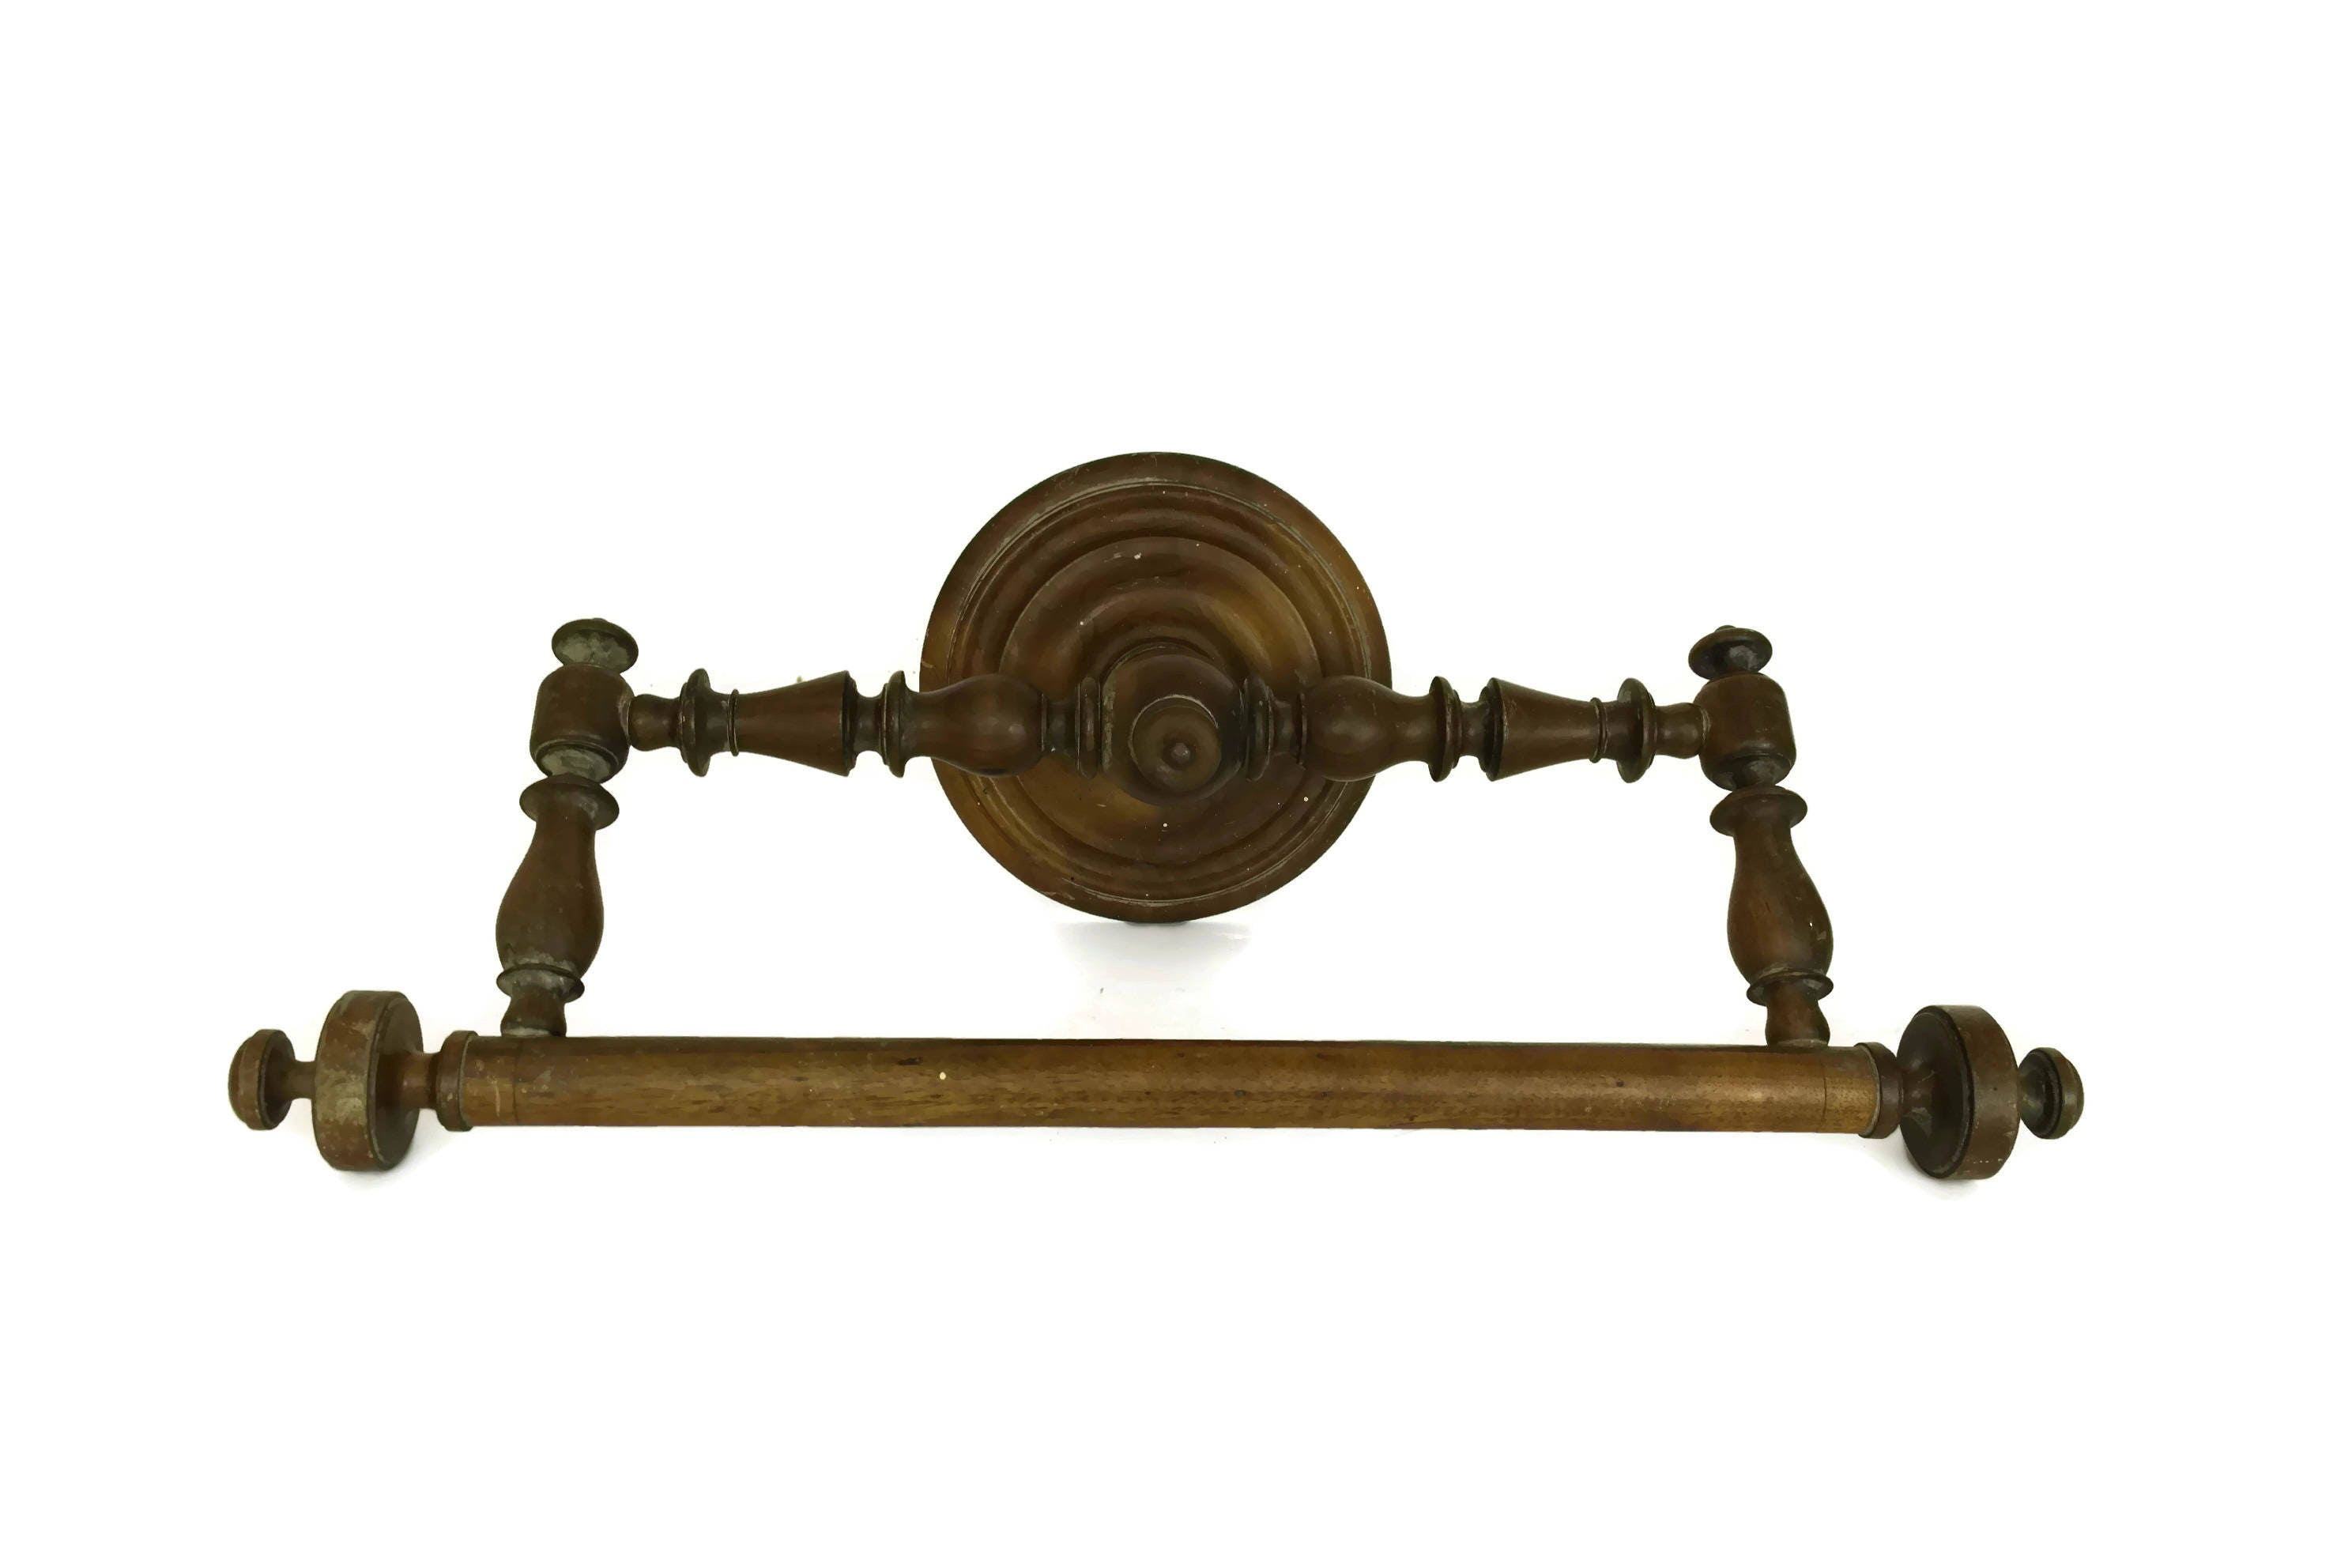 French Antique Ciel De Lit Towel Rail Edwardian (1901-1910)